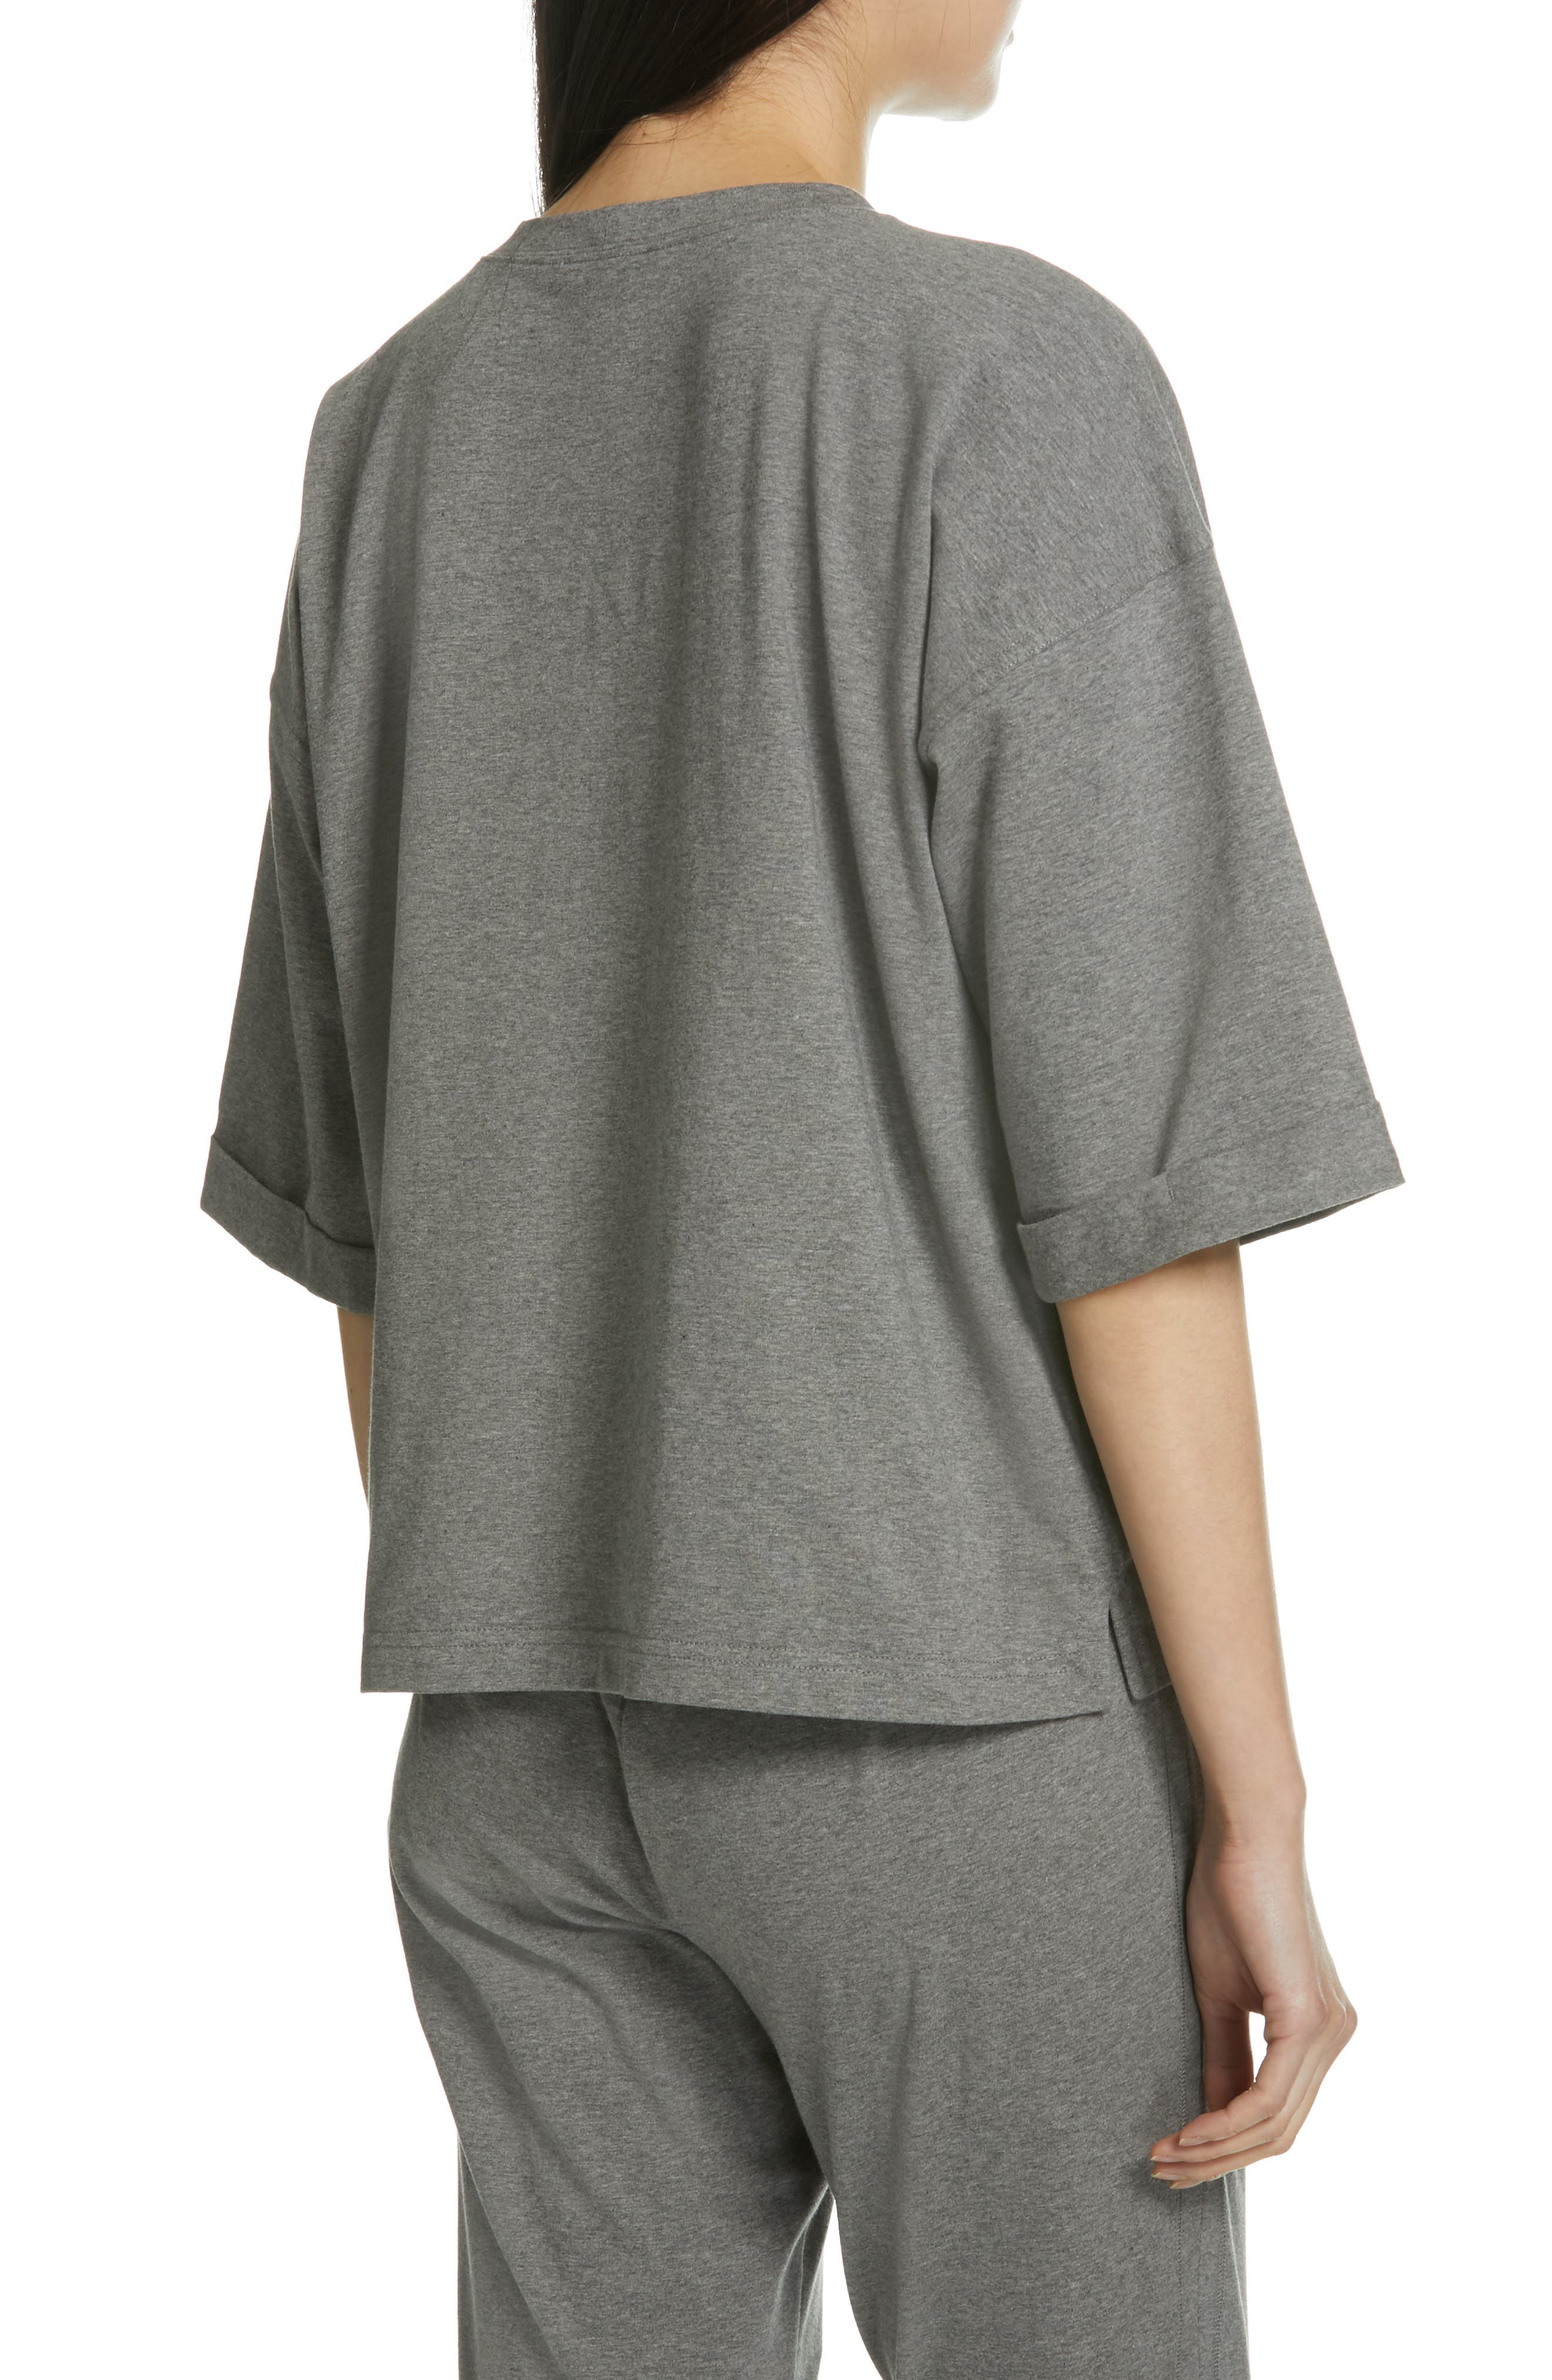 EILEEN FISHER, Stretch Organic Cotton Top, Alternate thumbnail 2, color, MOON